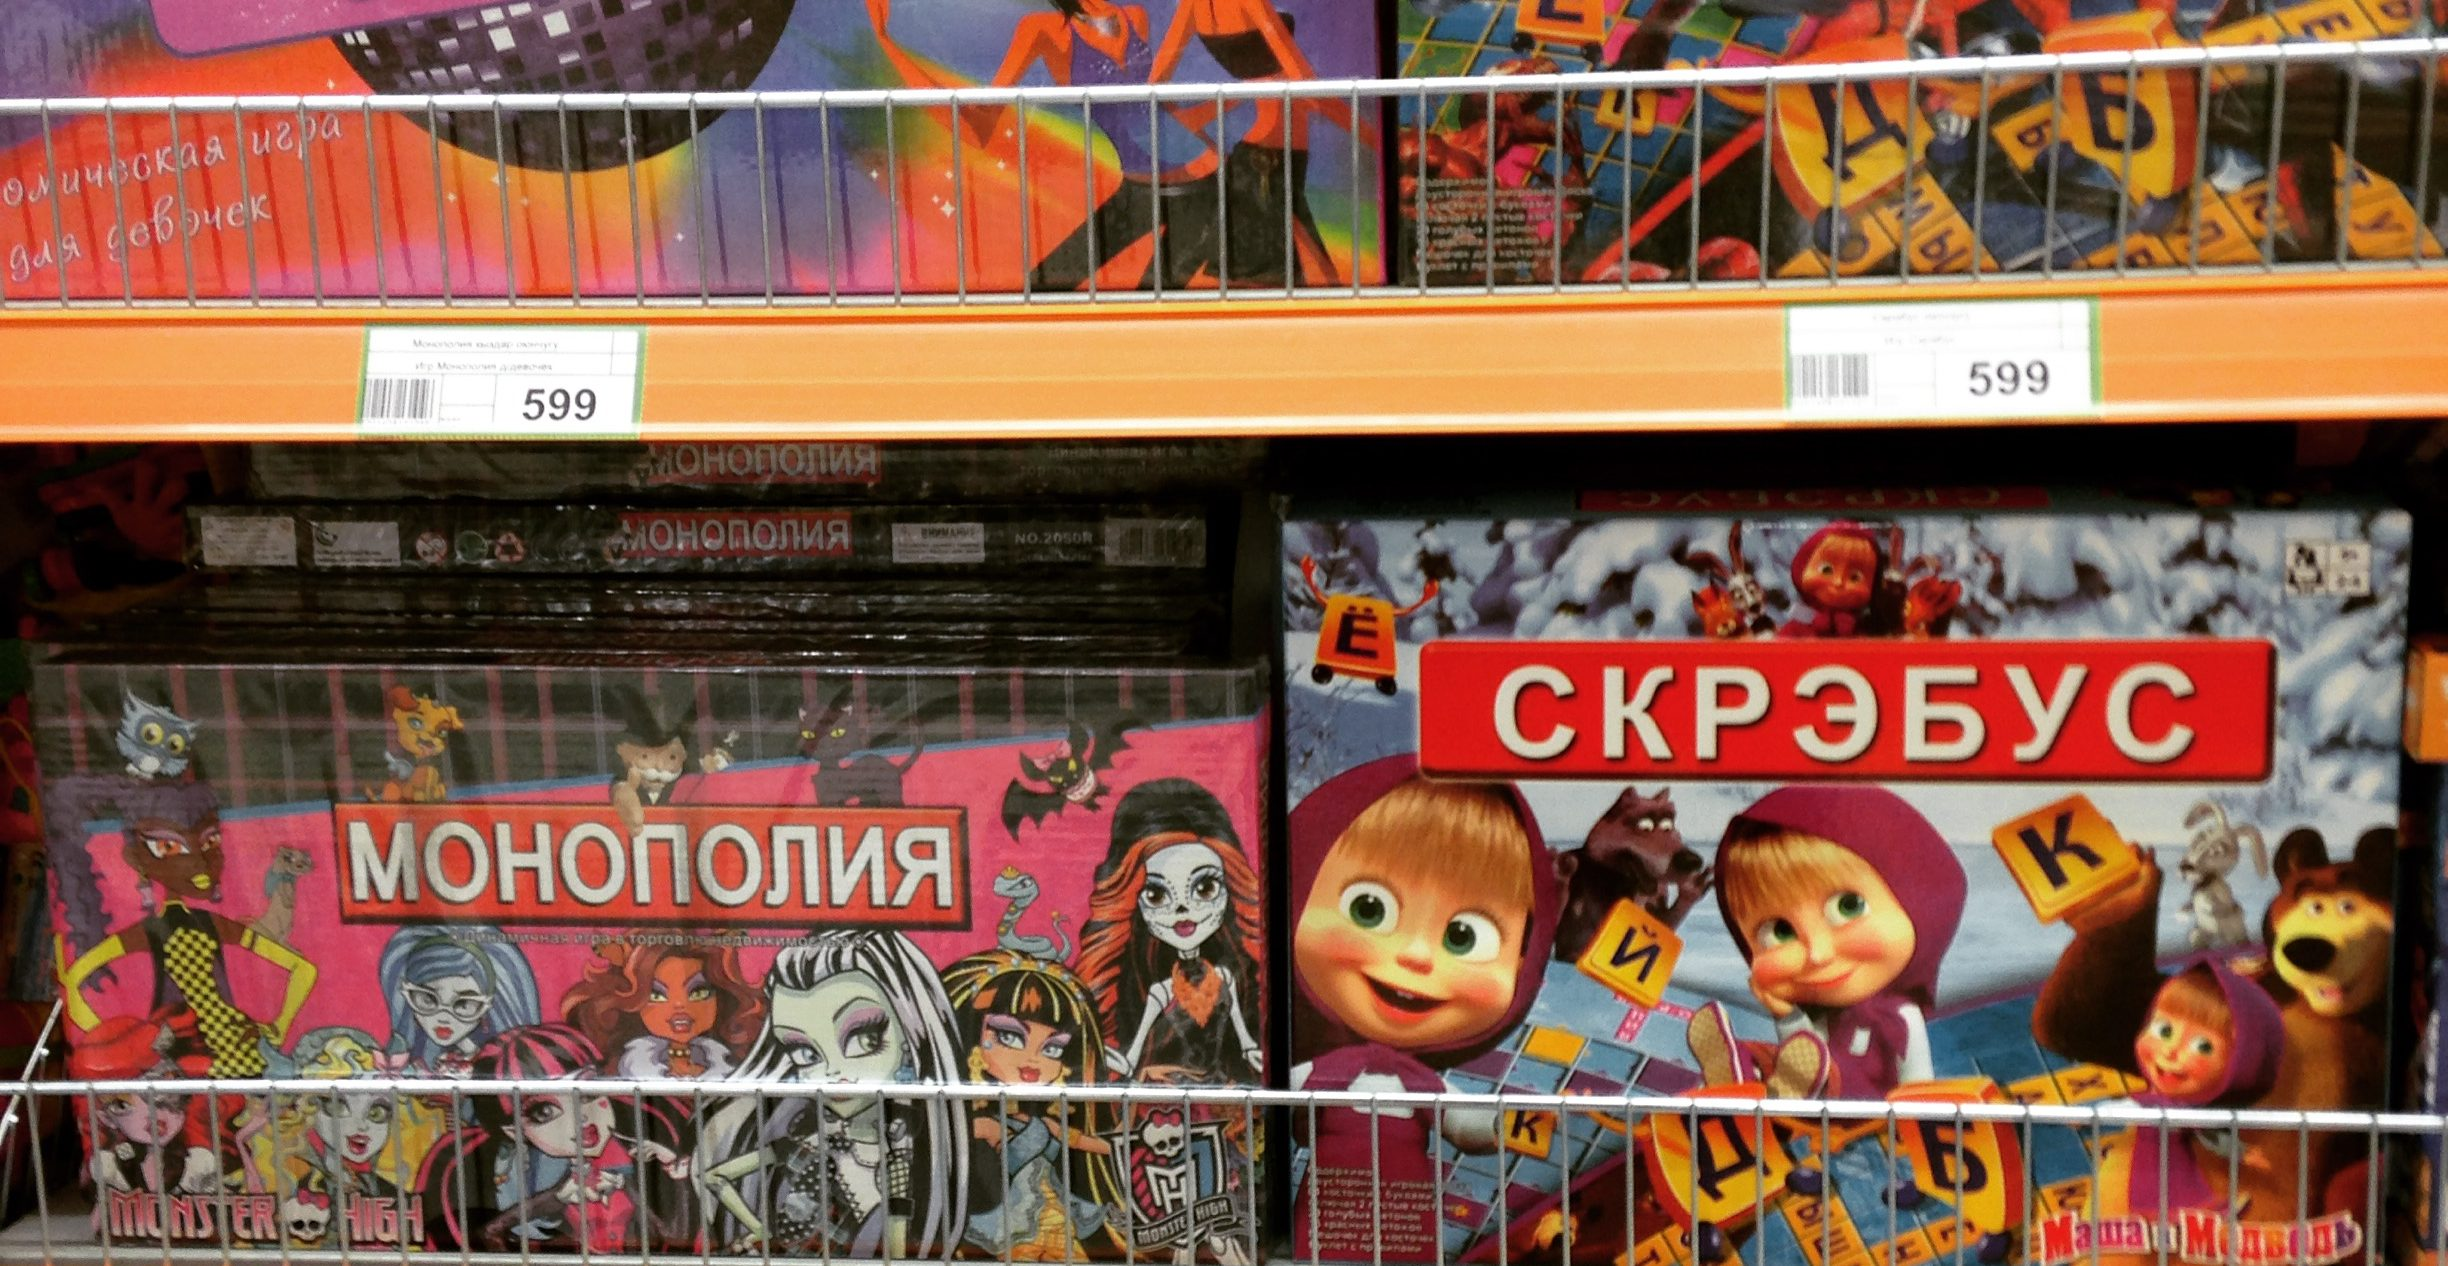 Russian board games